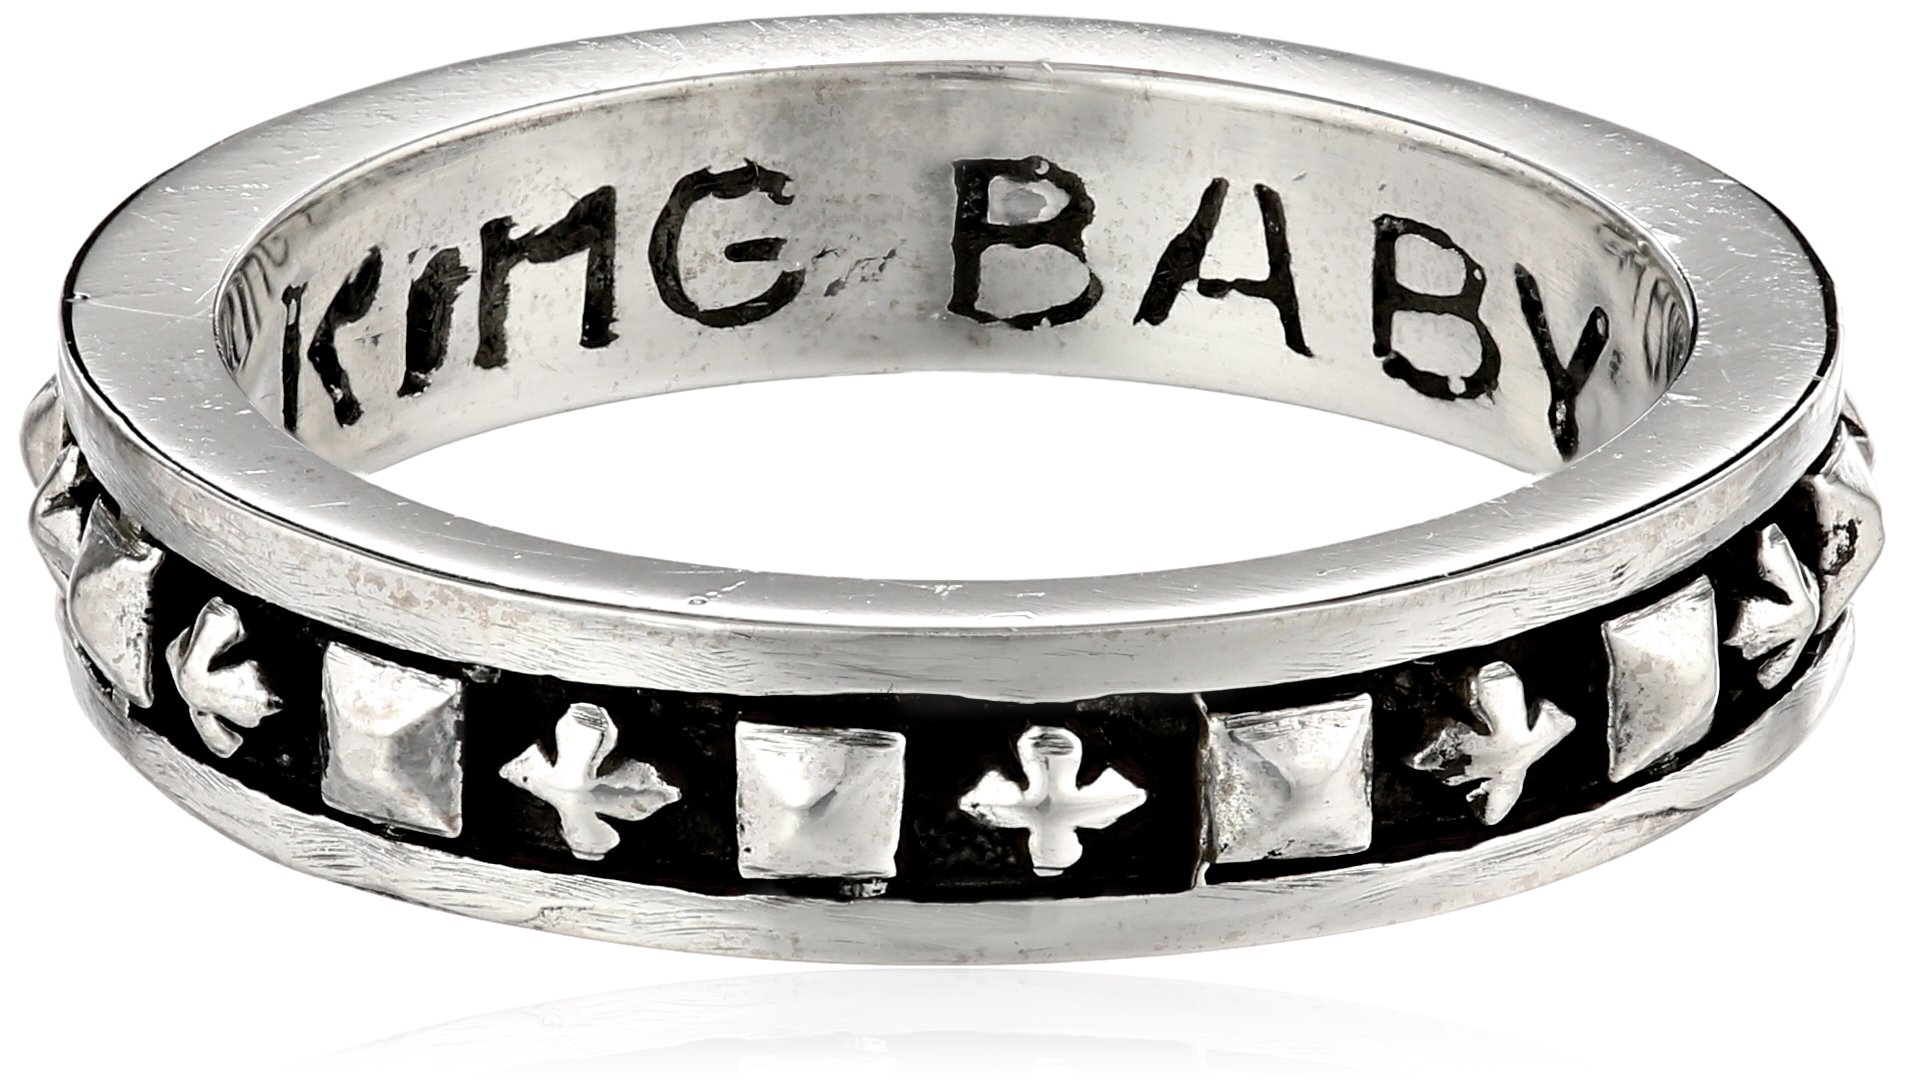 King Baby Men's Stackable Studded Ring with MB Crosses, Size 11 by King Baby (Image #1)